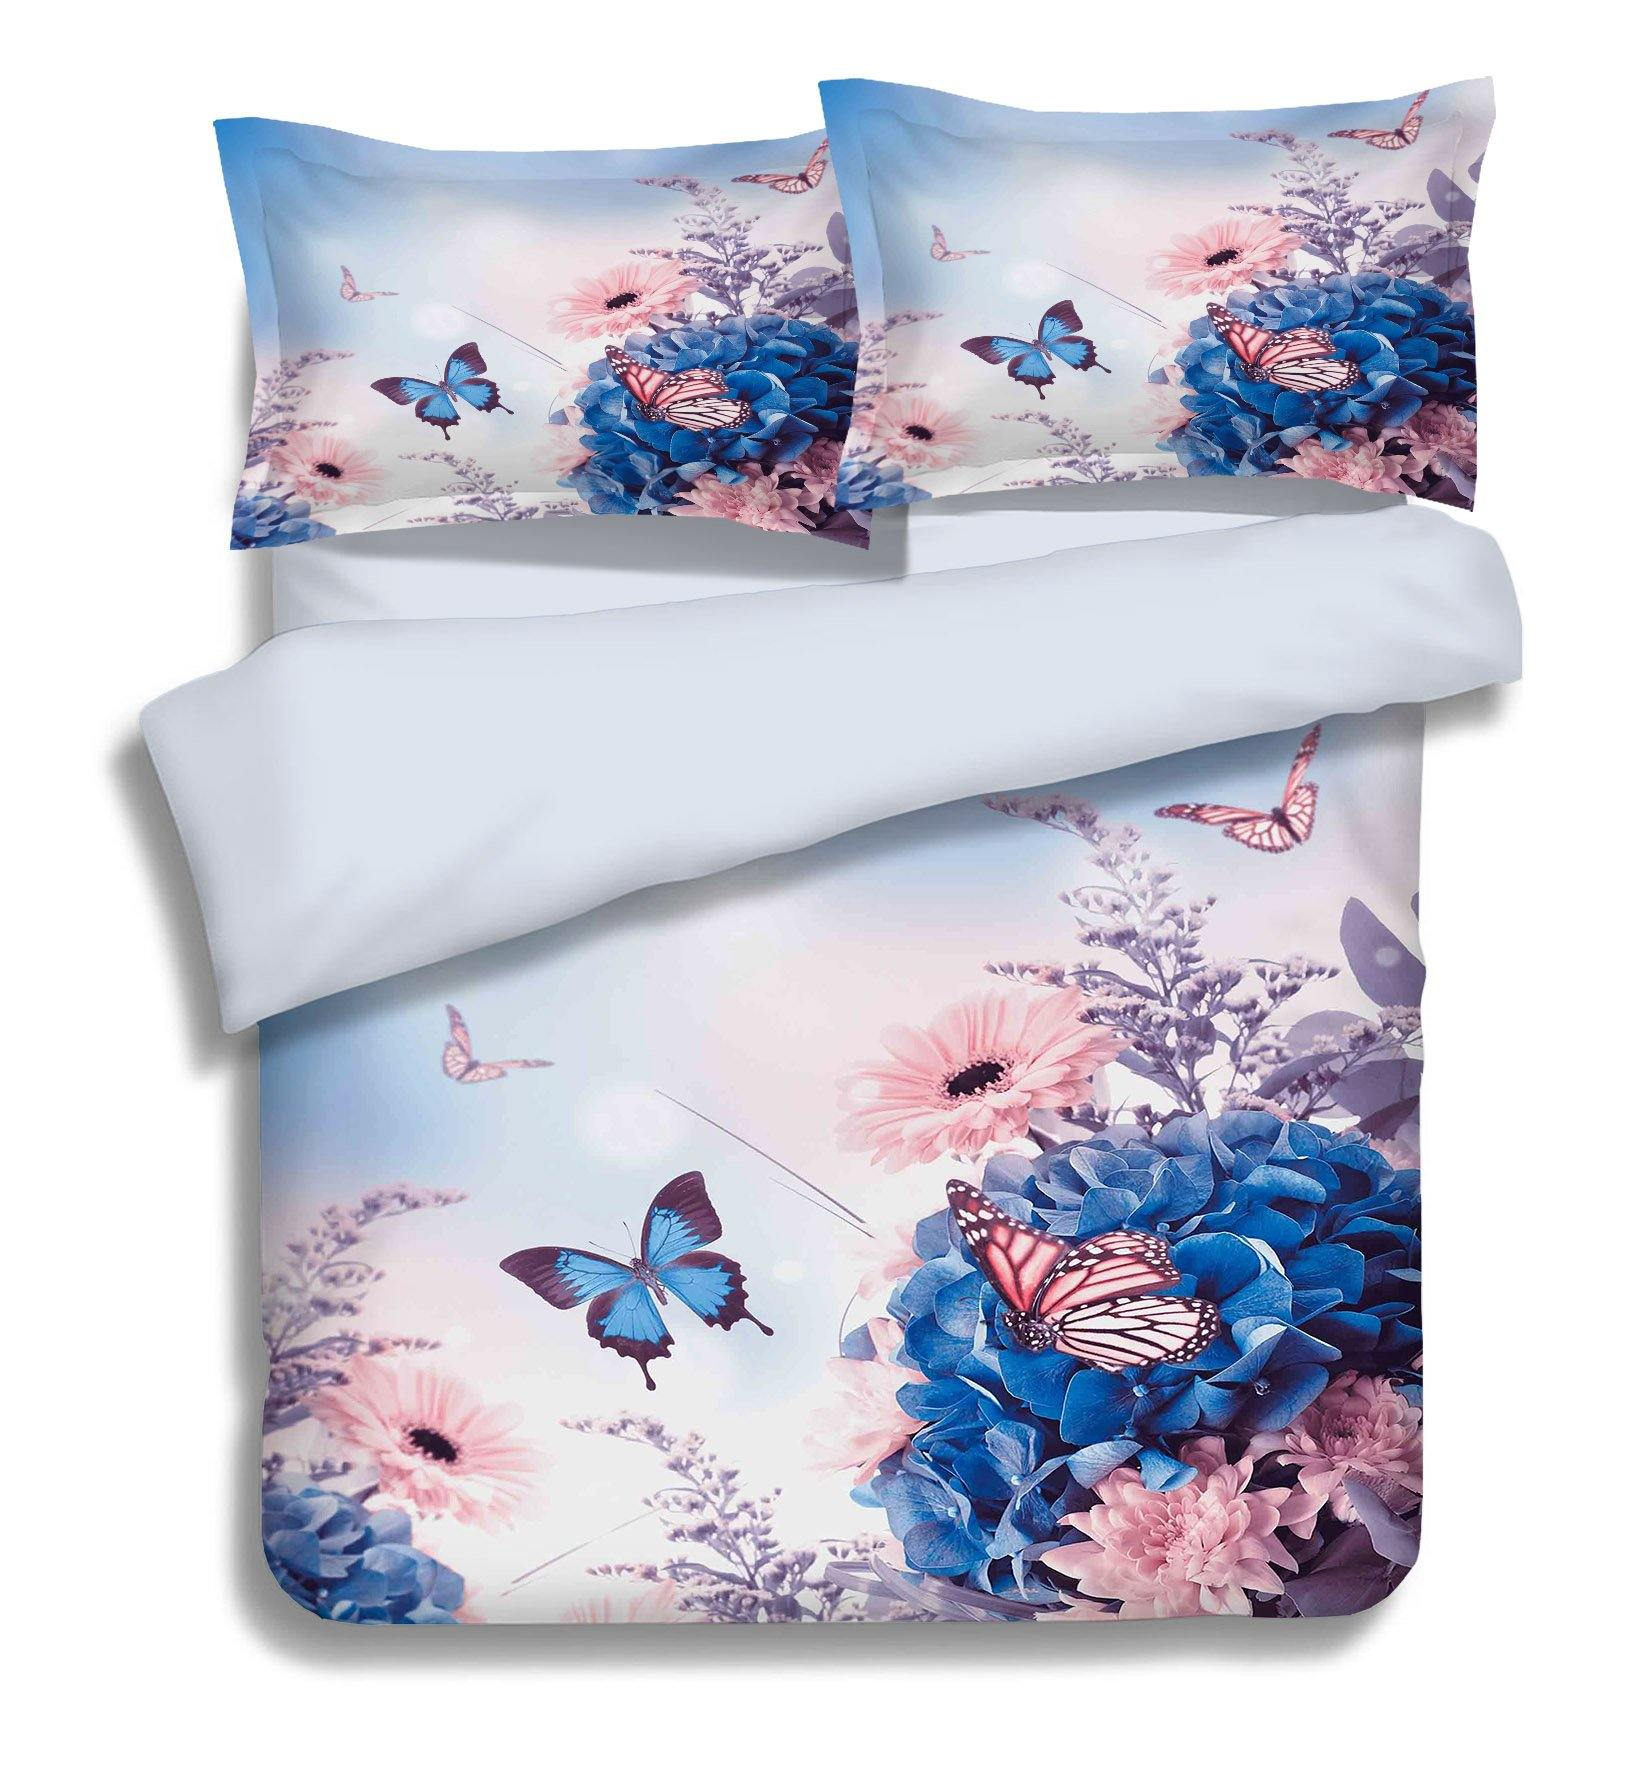 3D Flowers Butterflies 347 Bed Pillowcases Quilt